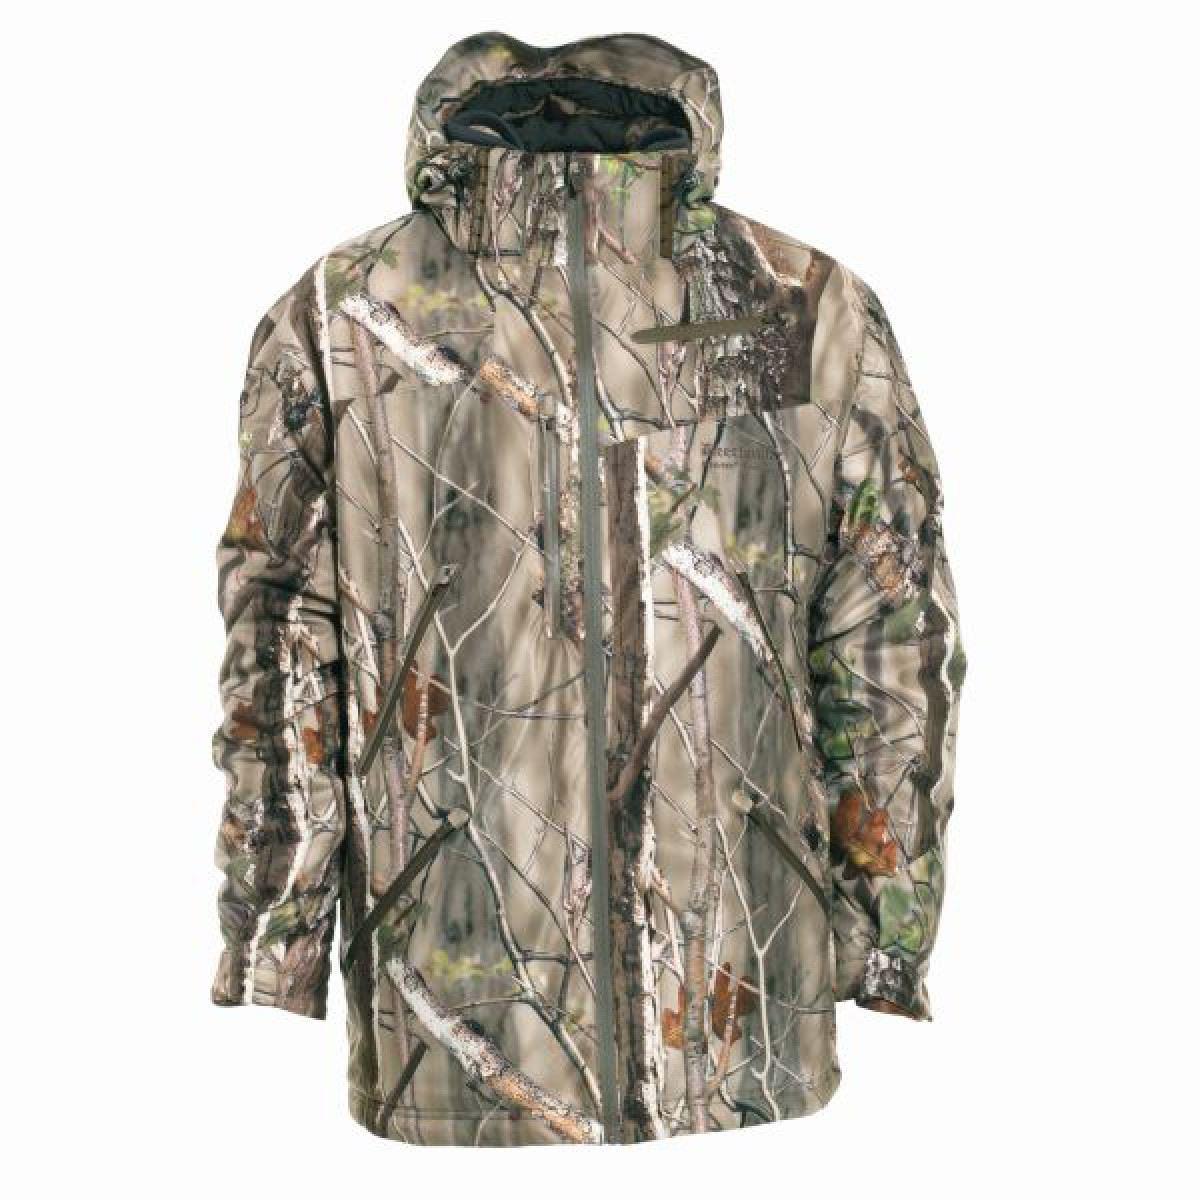 Deerhunter Blizzard Jacket with Thinsulate - Innovation Camo - reid outdoors